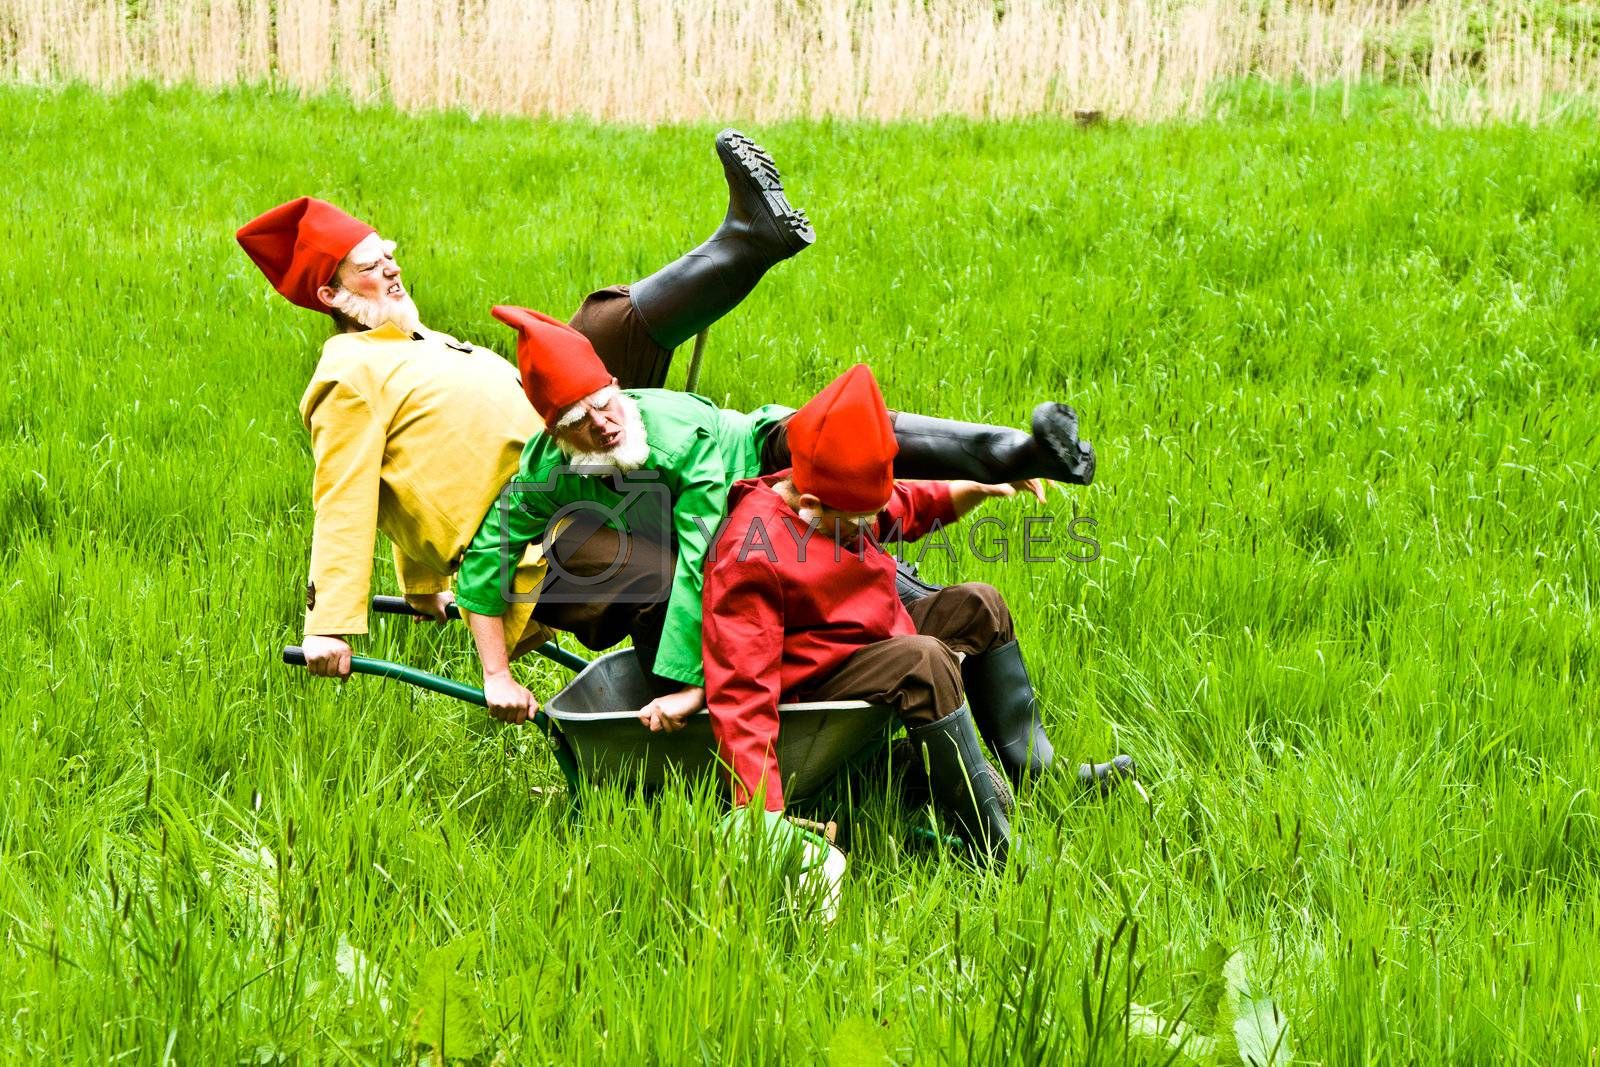 KRONBERG, GERMANY - MAY 01: three garden gnomes enjoy children at the festival for inauguration the New Quellenpark Kronberg on May 1, 2011 in Kronberg, Germany. The Quellenpark is a place with fresh natural mineral water and fertile marsh.